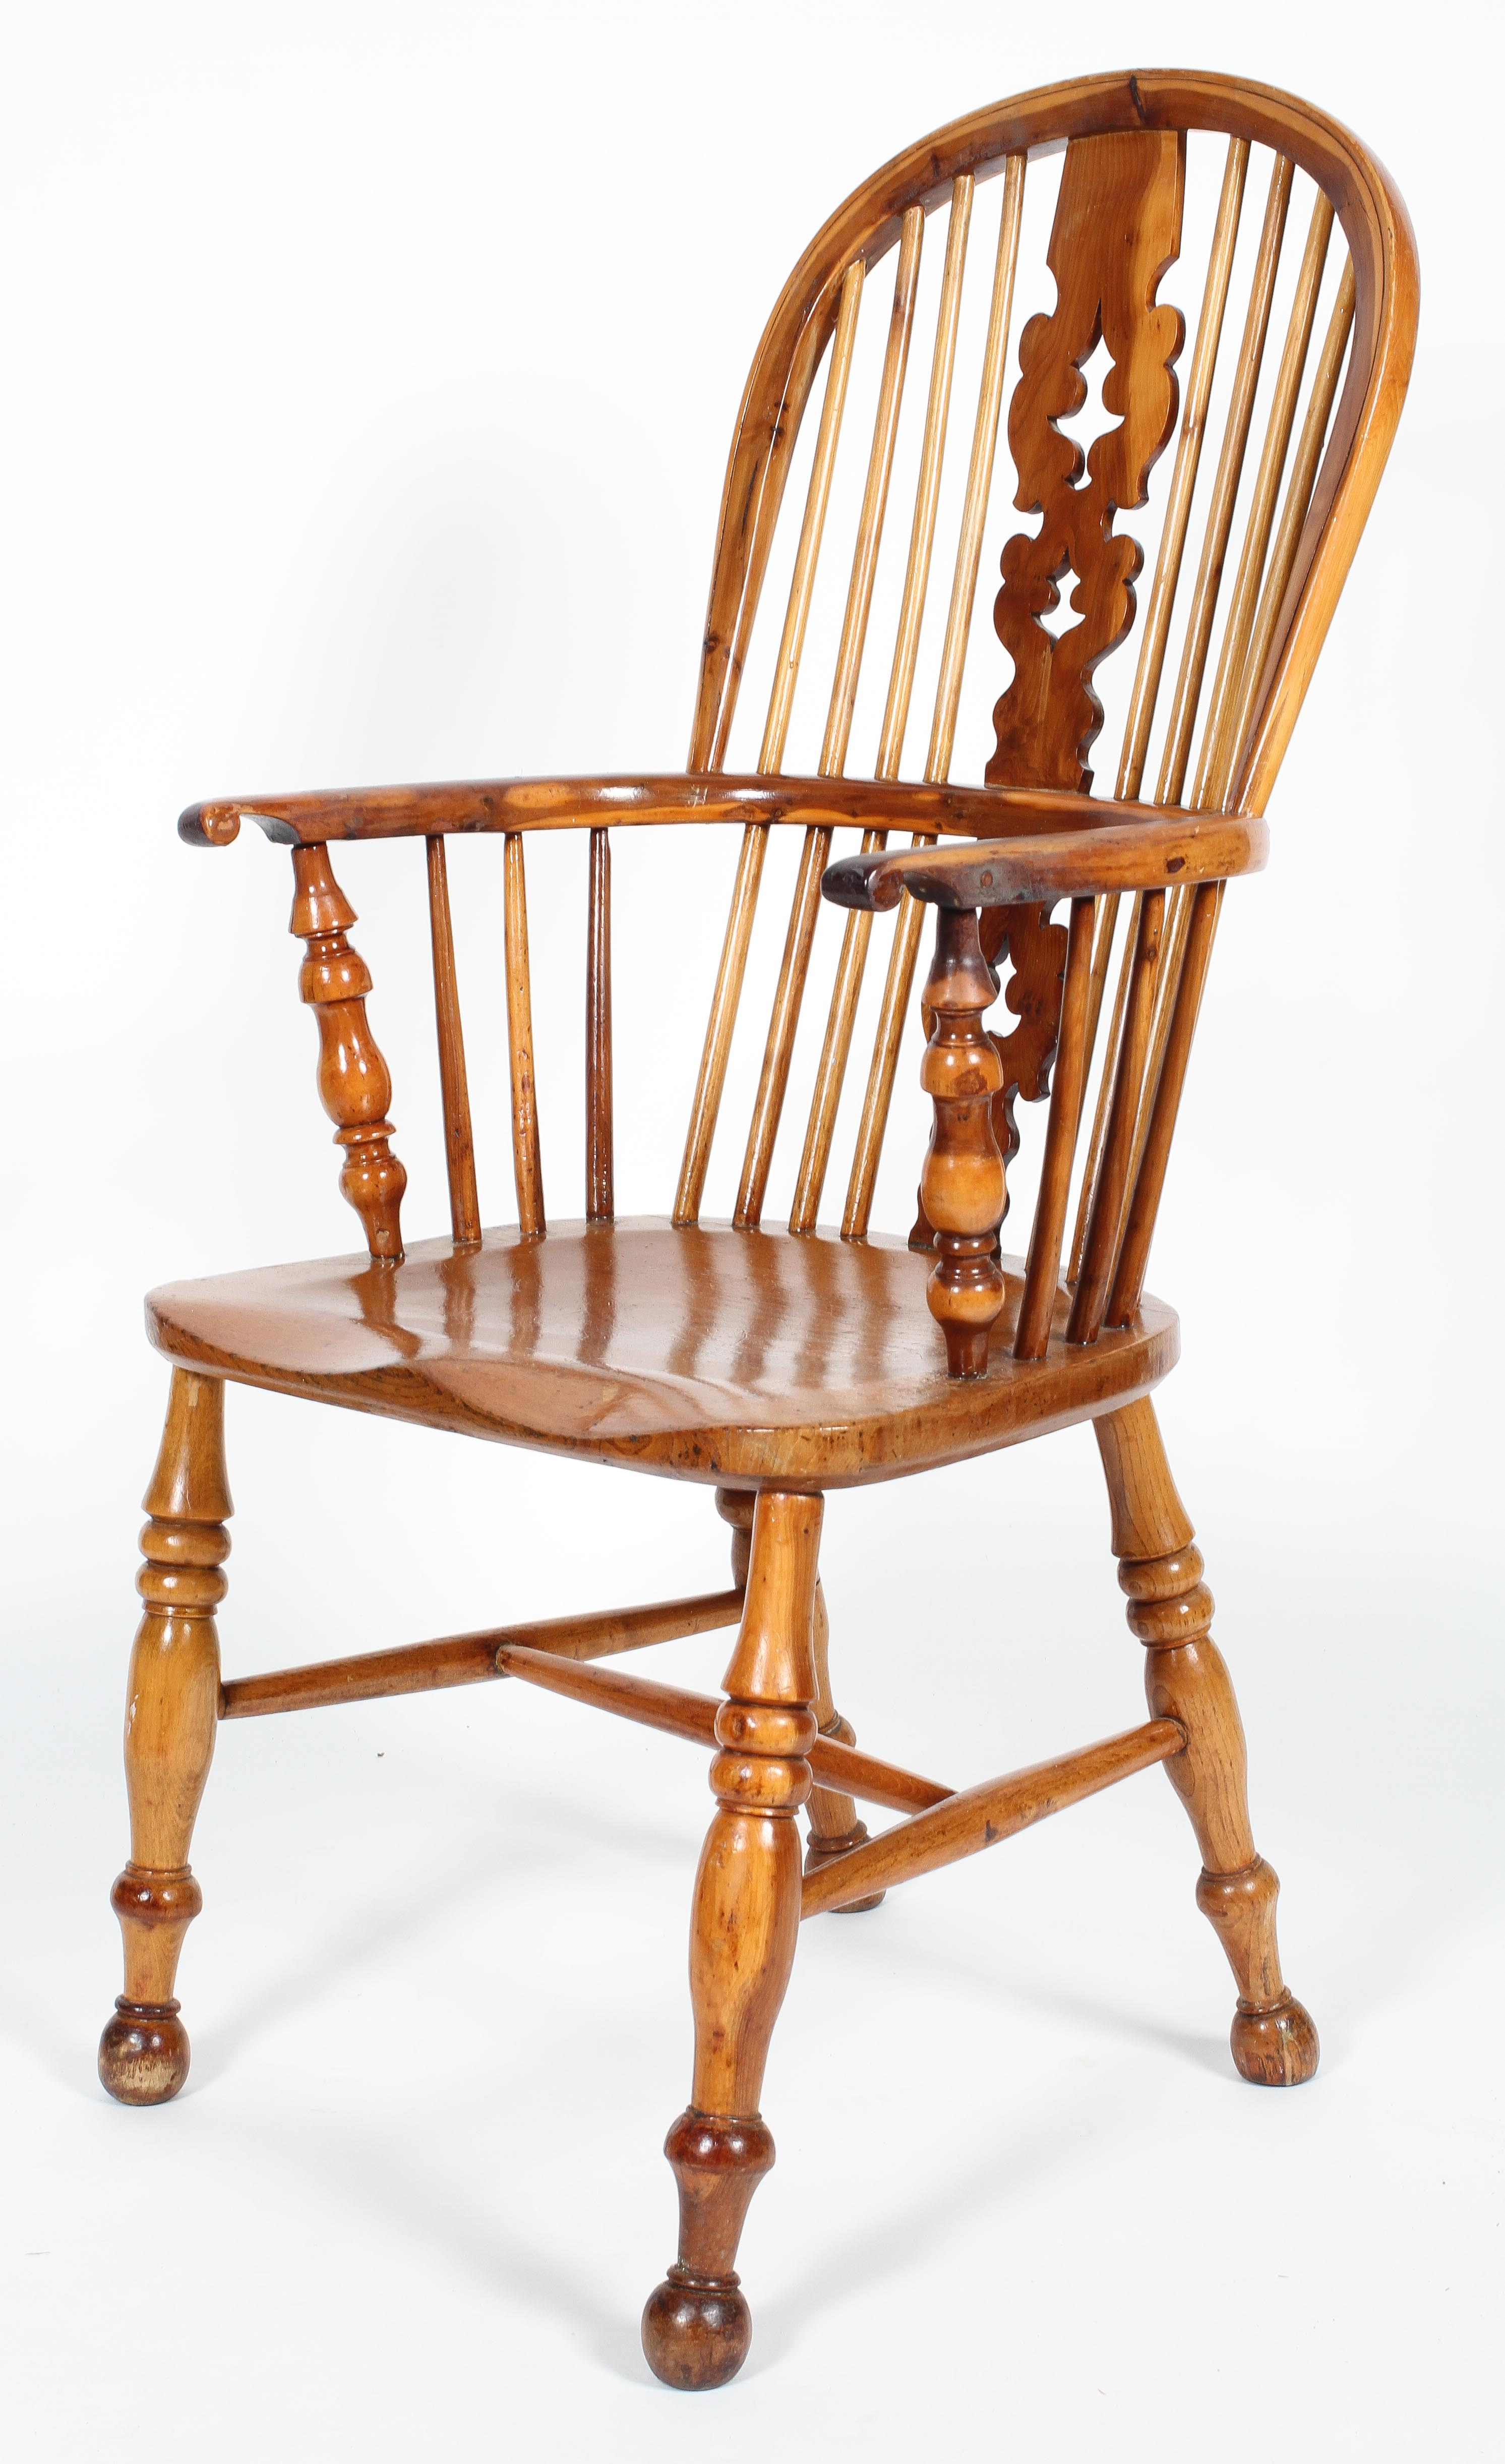 An oak and yew Windsor chair, with pierced scroll splat and baluster arm supports,